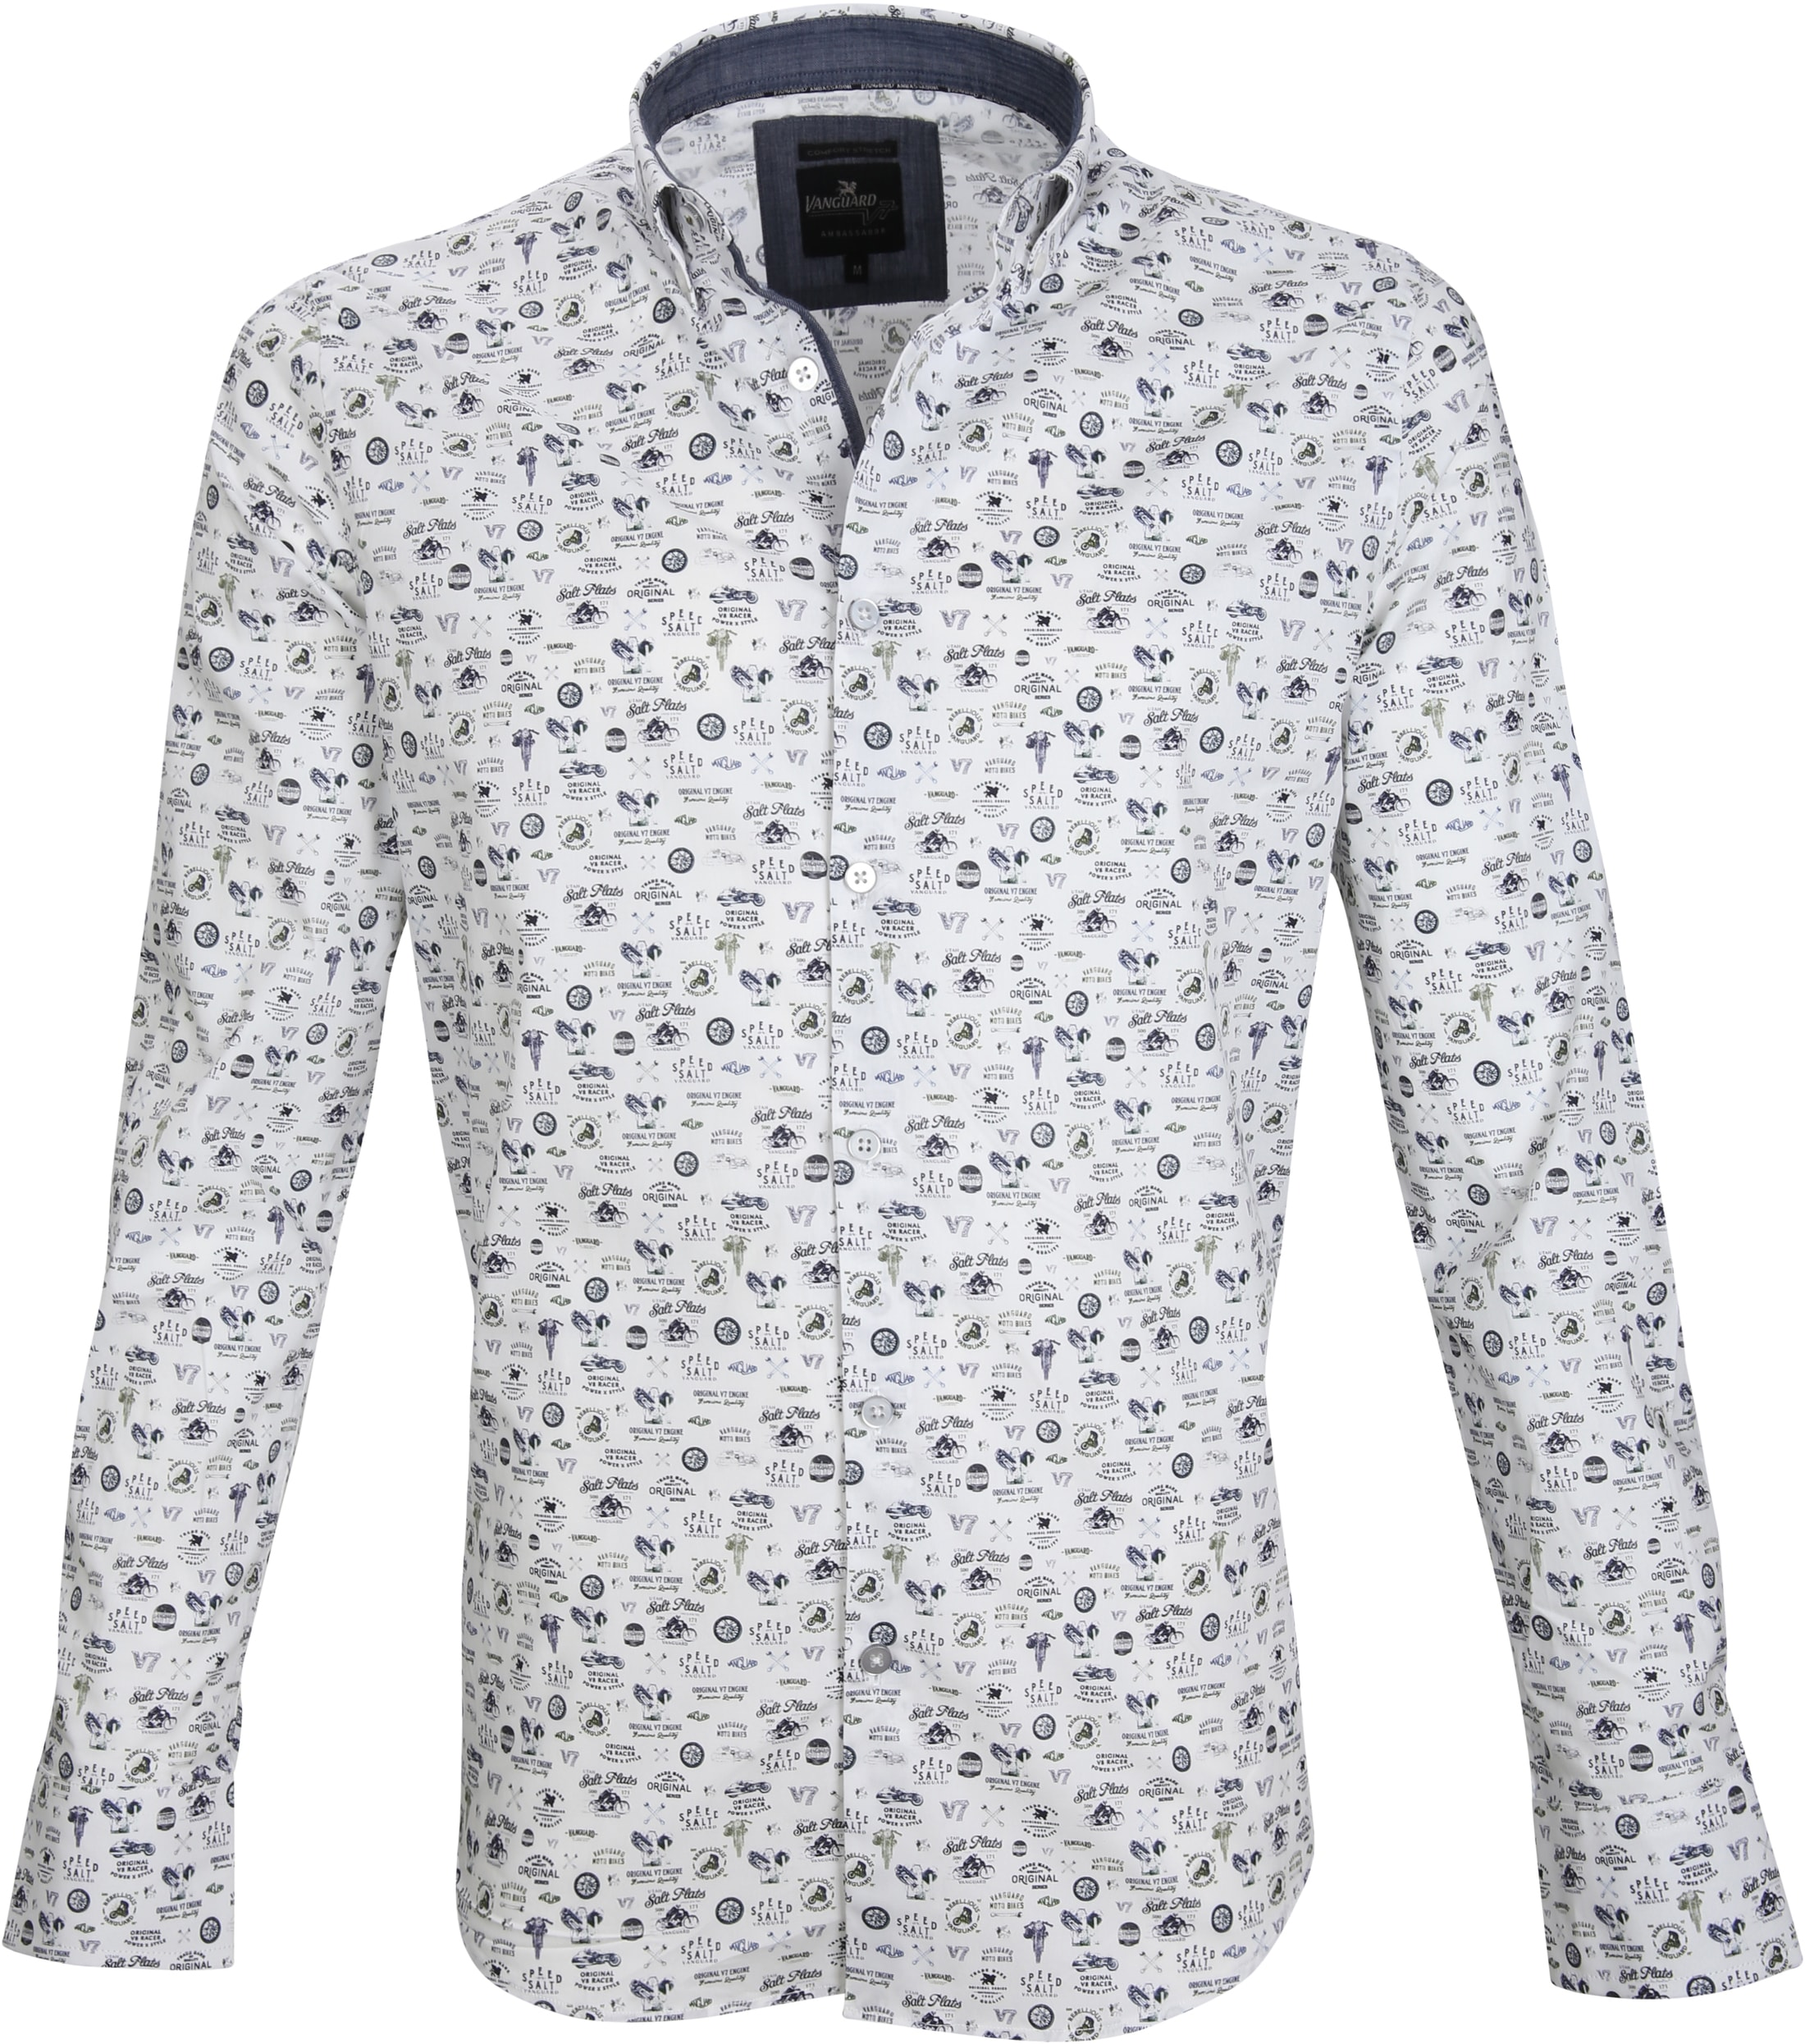 Casual Wit Overhemd.Vanguard Casual Overhemd Print Wit Vsi186402 Online Bestellen Suitable